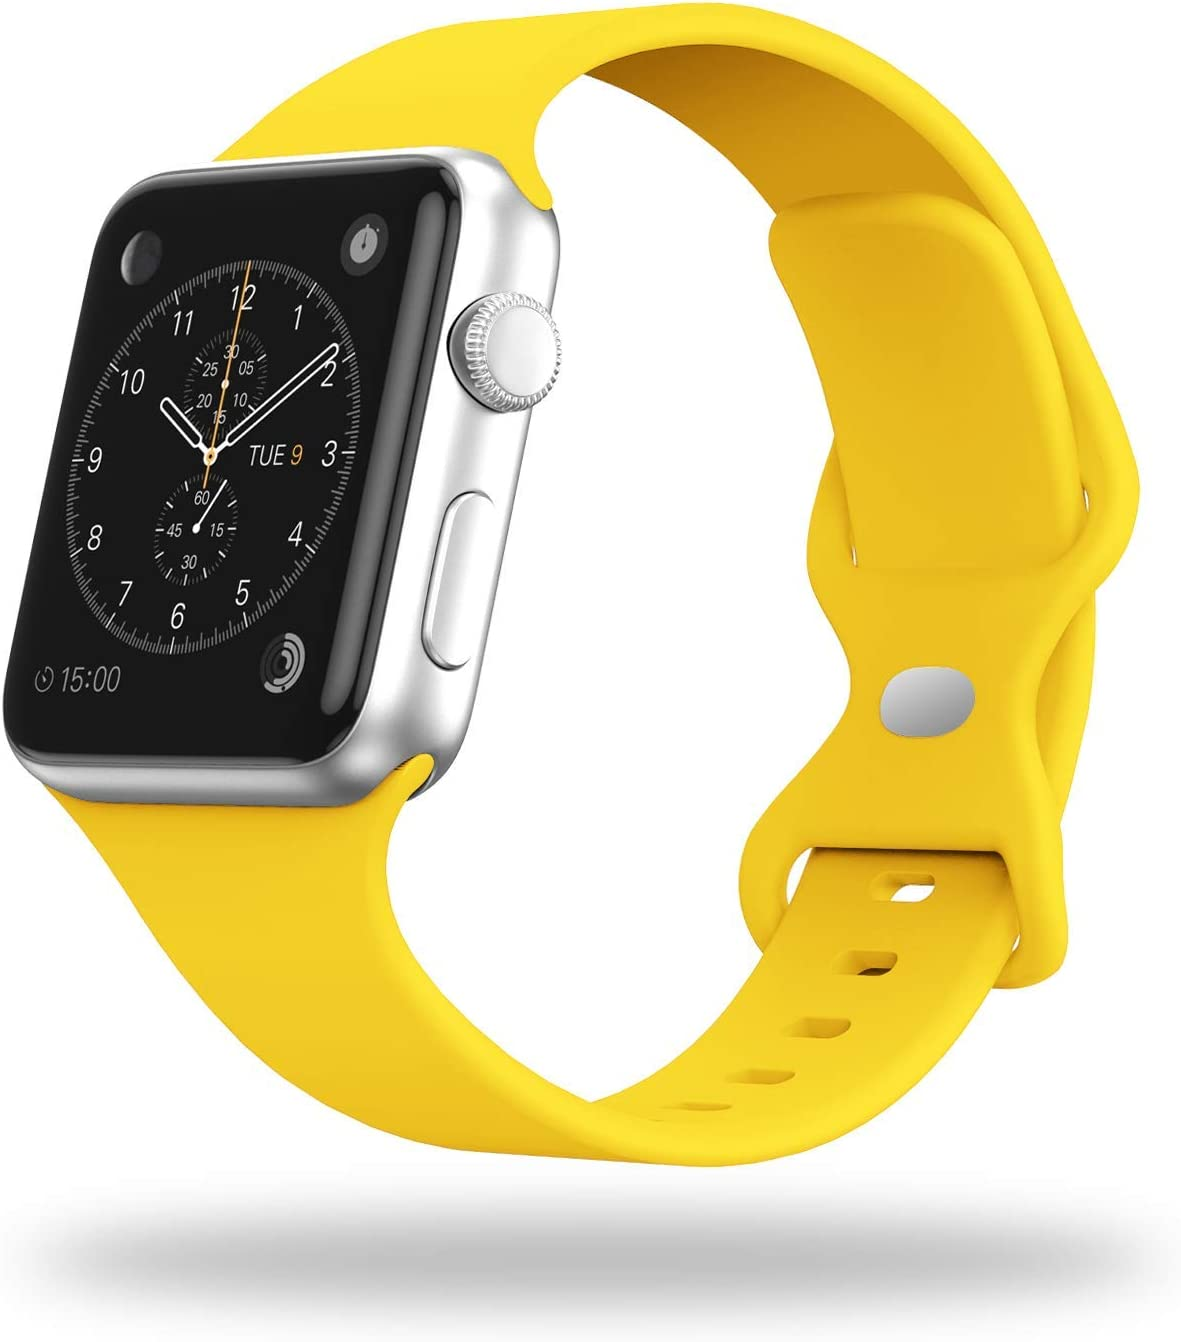 STG Smart Watch Band Compatible with Apple Watch Band 38mm 40mm 42mm 44mm, Soft Silicone Replacement Sport Strap Compatible for iWatch SE Series 6/5/4/3/2/1 (42/44mm, Yellow)